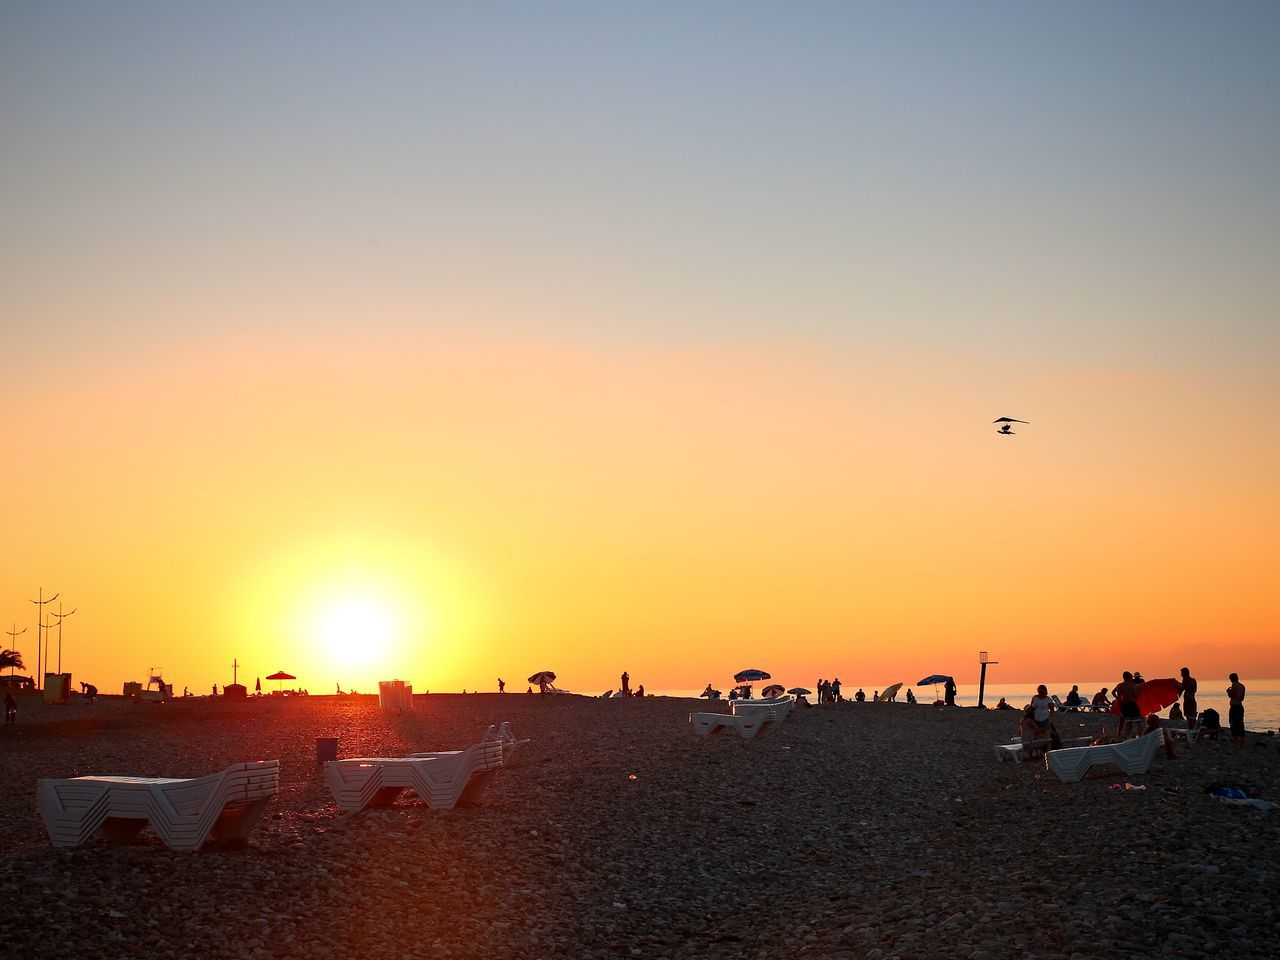 sunset, beach, sand, sky, sea, leisure activity, nature, outdoors, real people, vacations, sun, clear sky, enjoyment, weekend activities, large group of people, flying, silhouette, scenics, sunlight, beach volleyball, beauty in nature, leisure, lifestyles, horizon over water, day, people